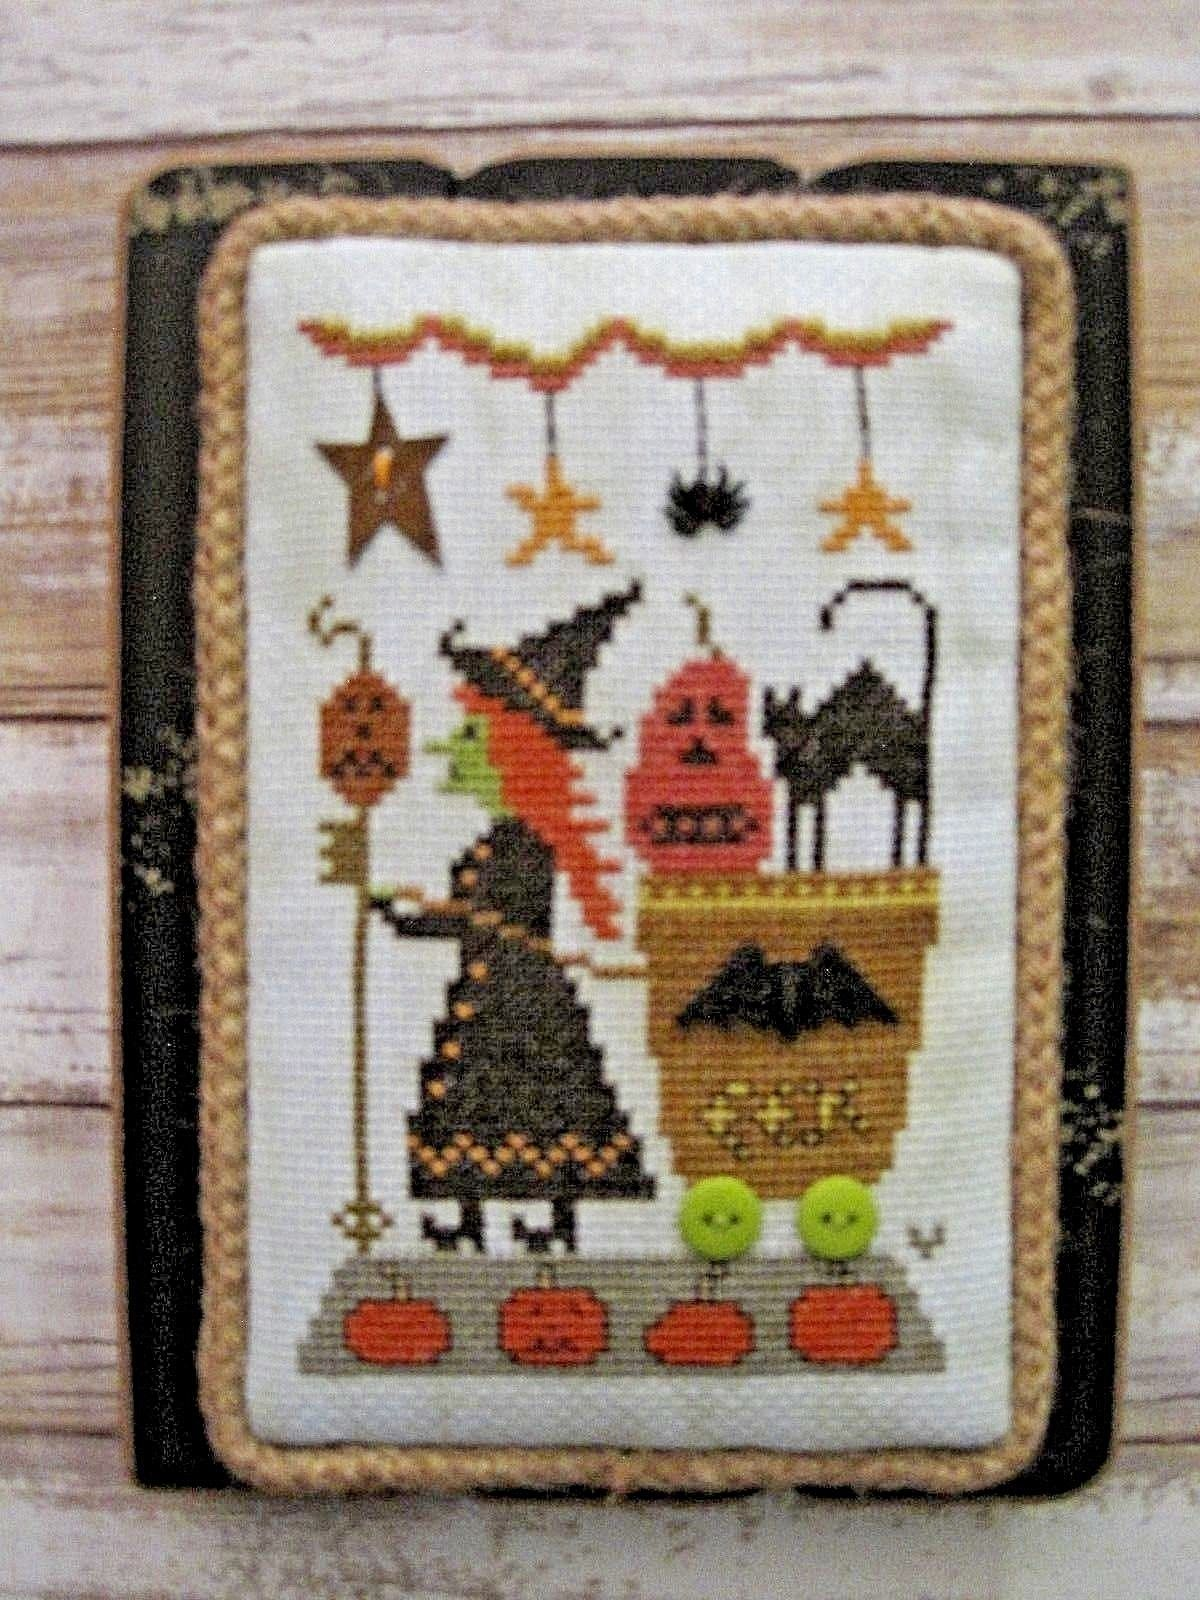 Interio Sofa Caddy 12 50 Witch Delivering Tricks In Wagon Finished Cross Stitch To